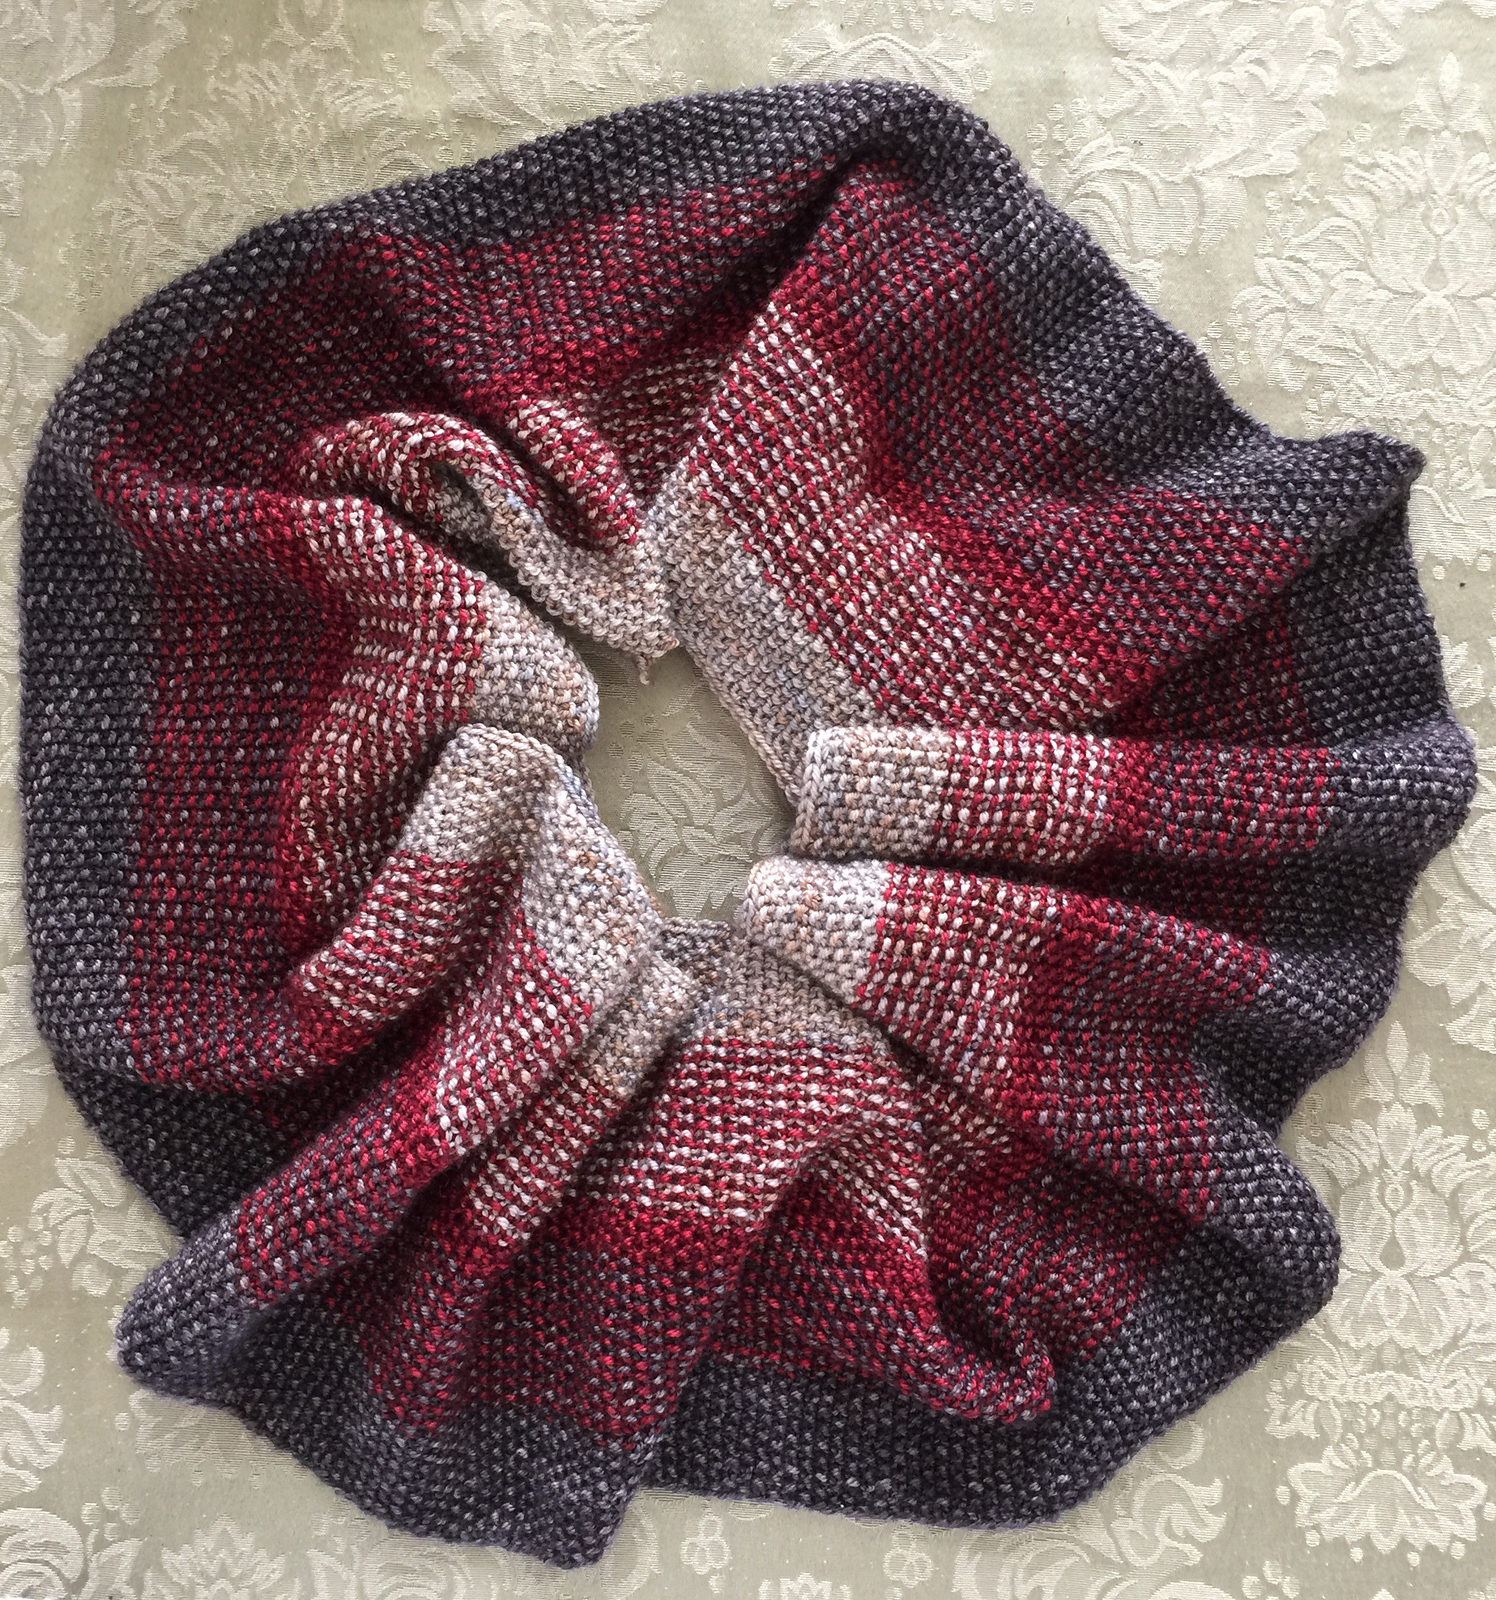 Scarf Knitting Patterns Best Of Infinity Scarf Knitting Patterns Of Wonderful 41 Pictures Scarf Knitting Patterns